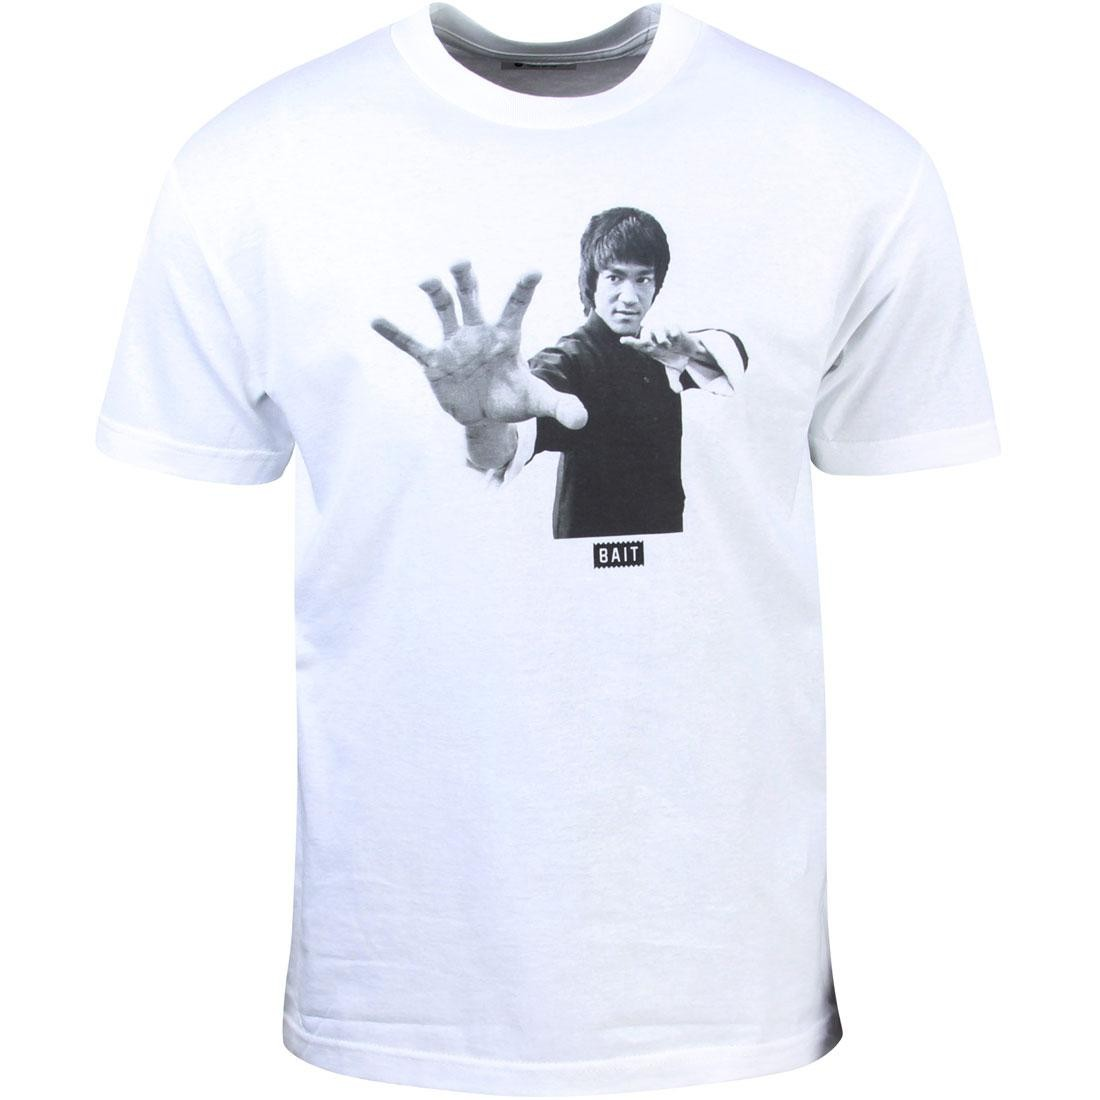 BAIT x Bruce Lee 75th Anniversary Tee (white)